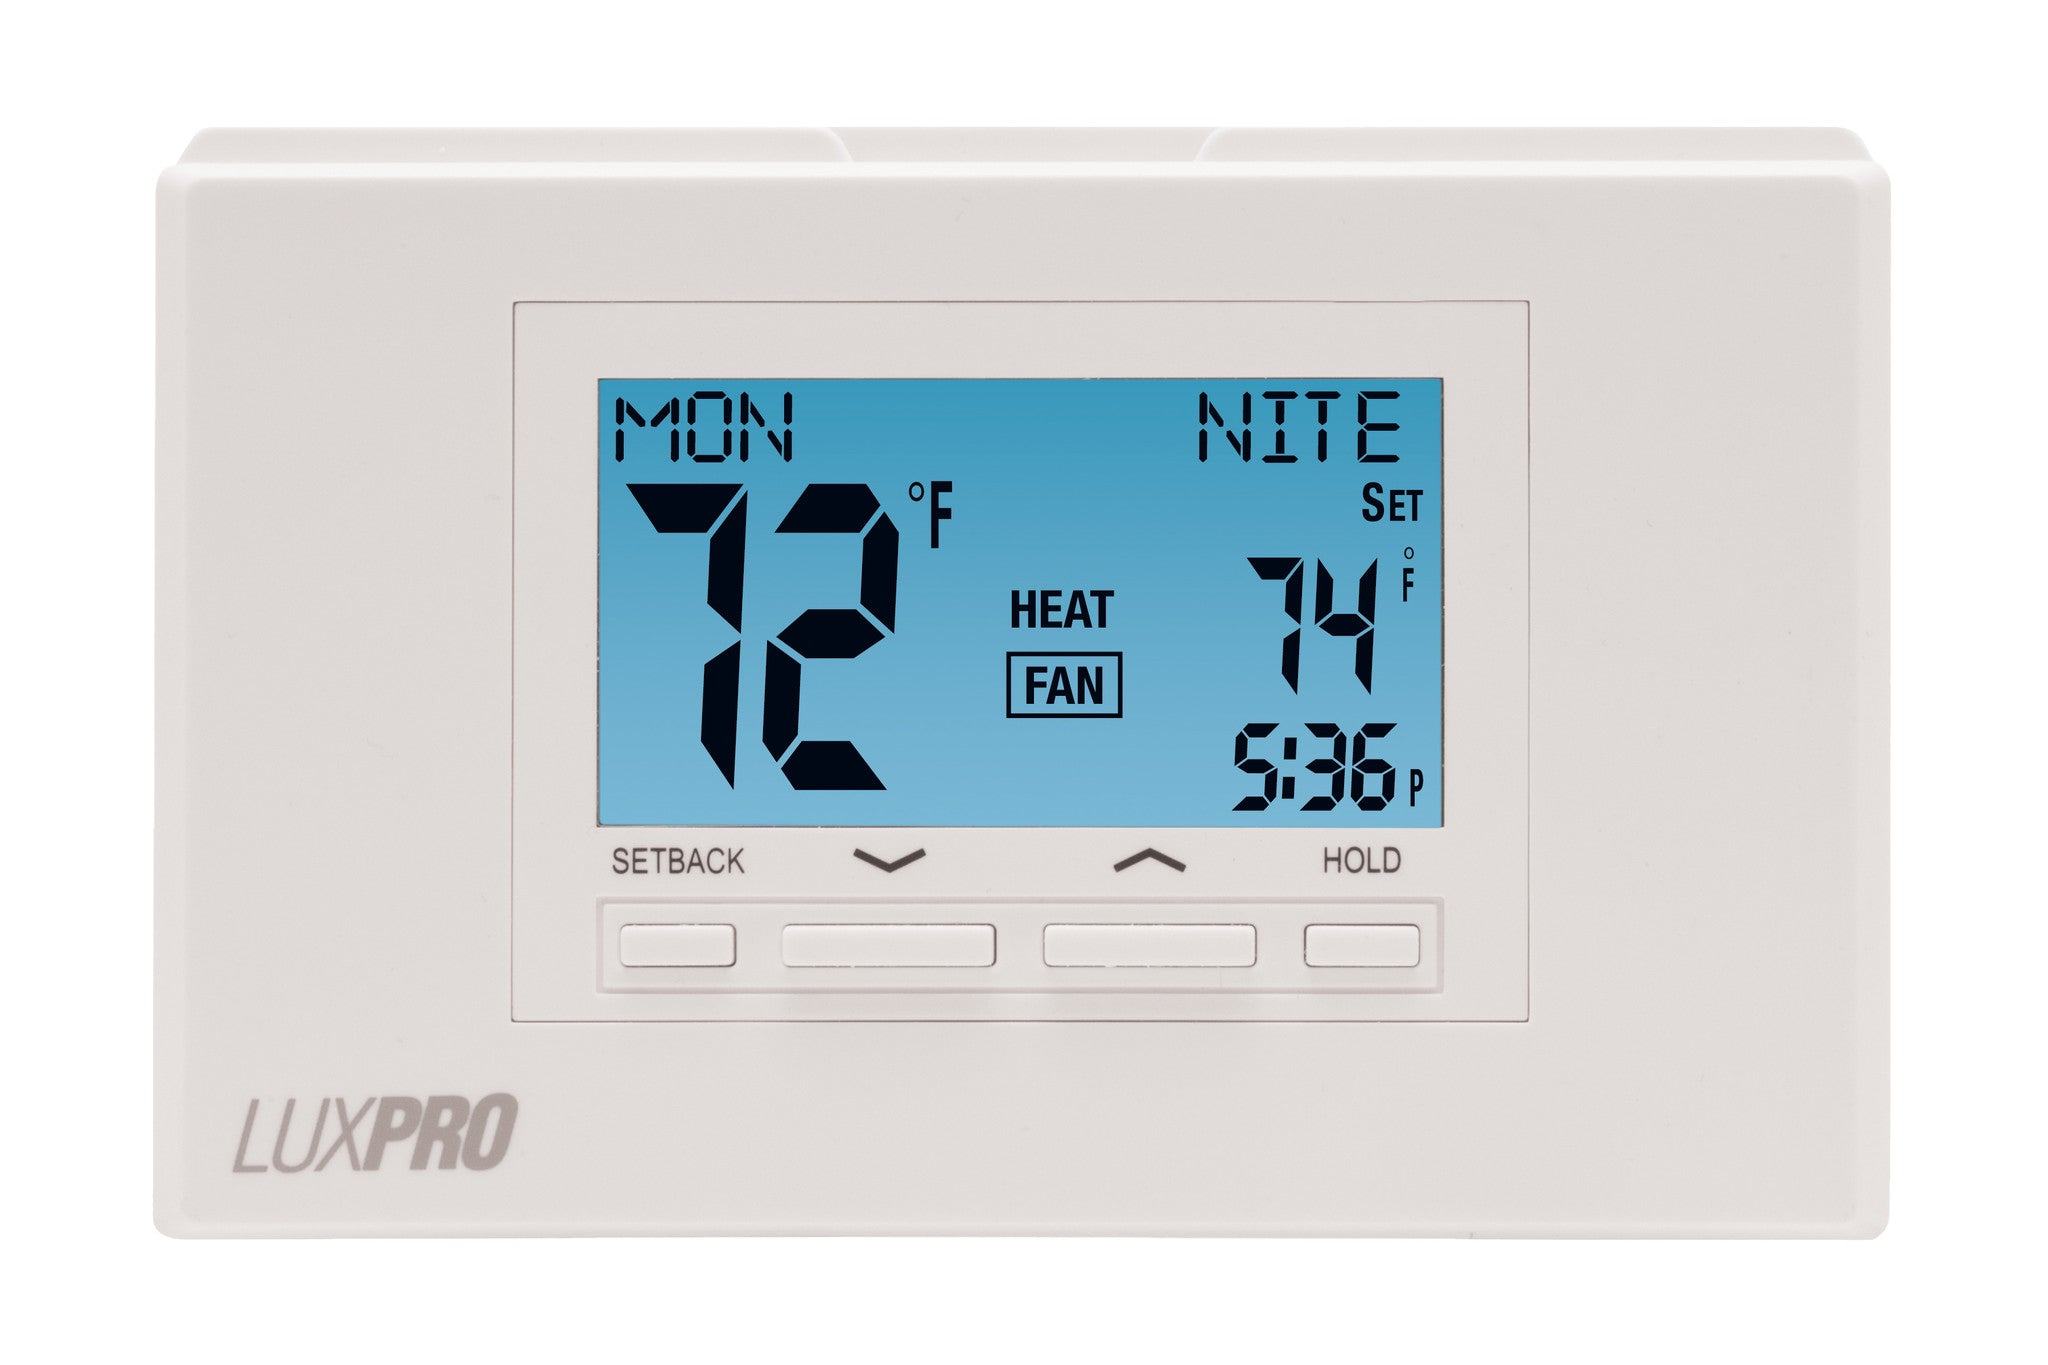 LuxPro P722U   PROGRAMMABLE THERMOSTAT, 7 DAY PROGRAMMABLE MULTI-STAGE (2 HEAT - 2 COOL)